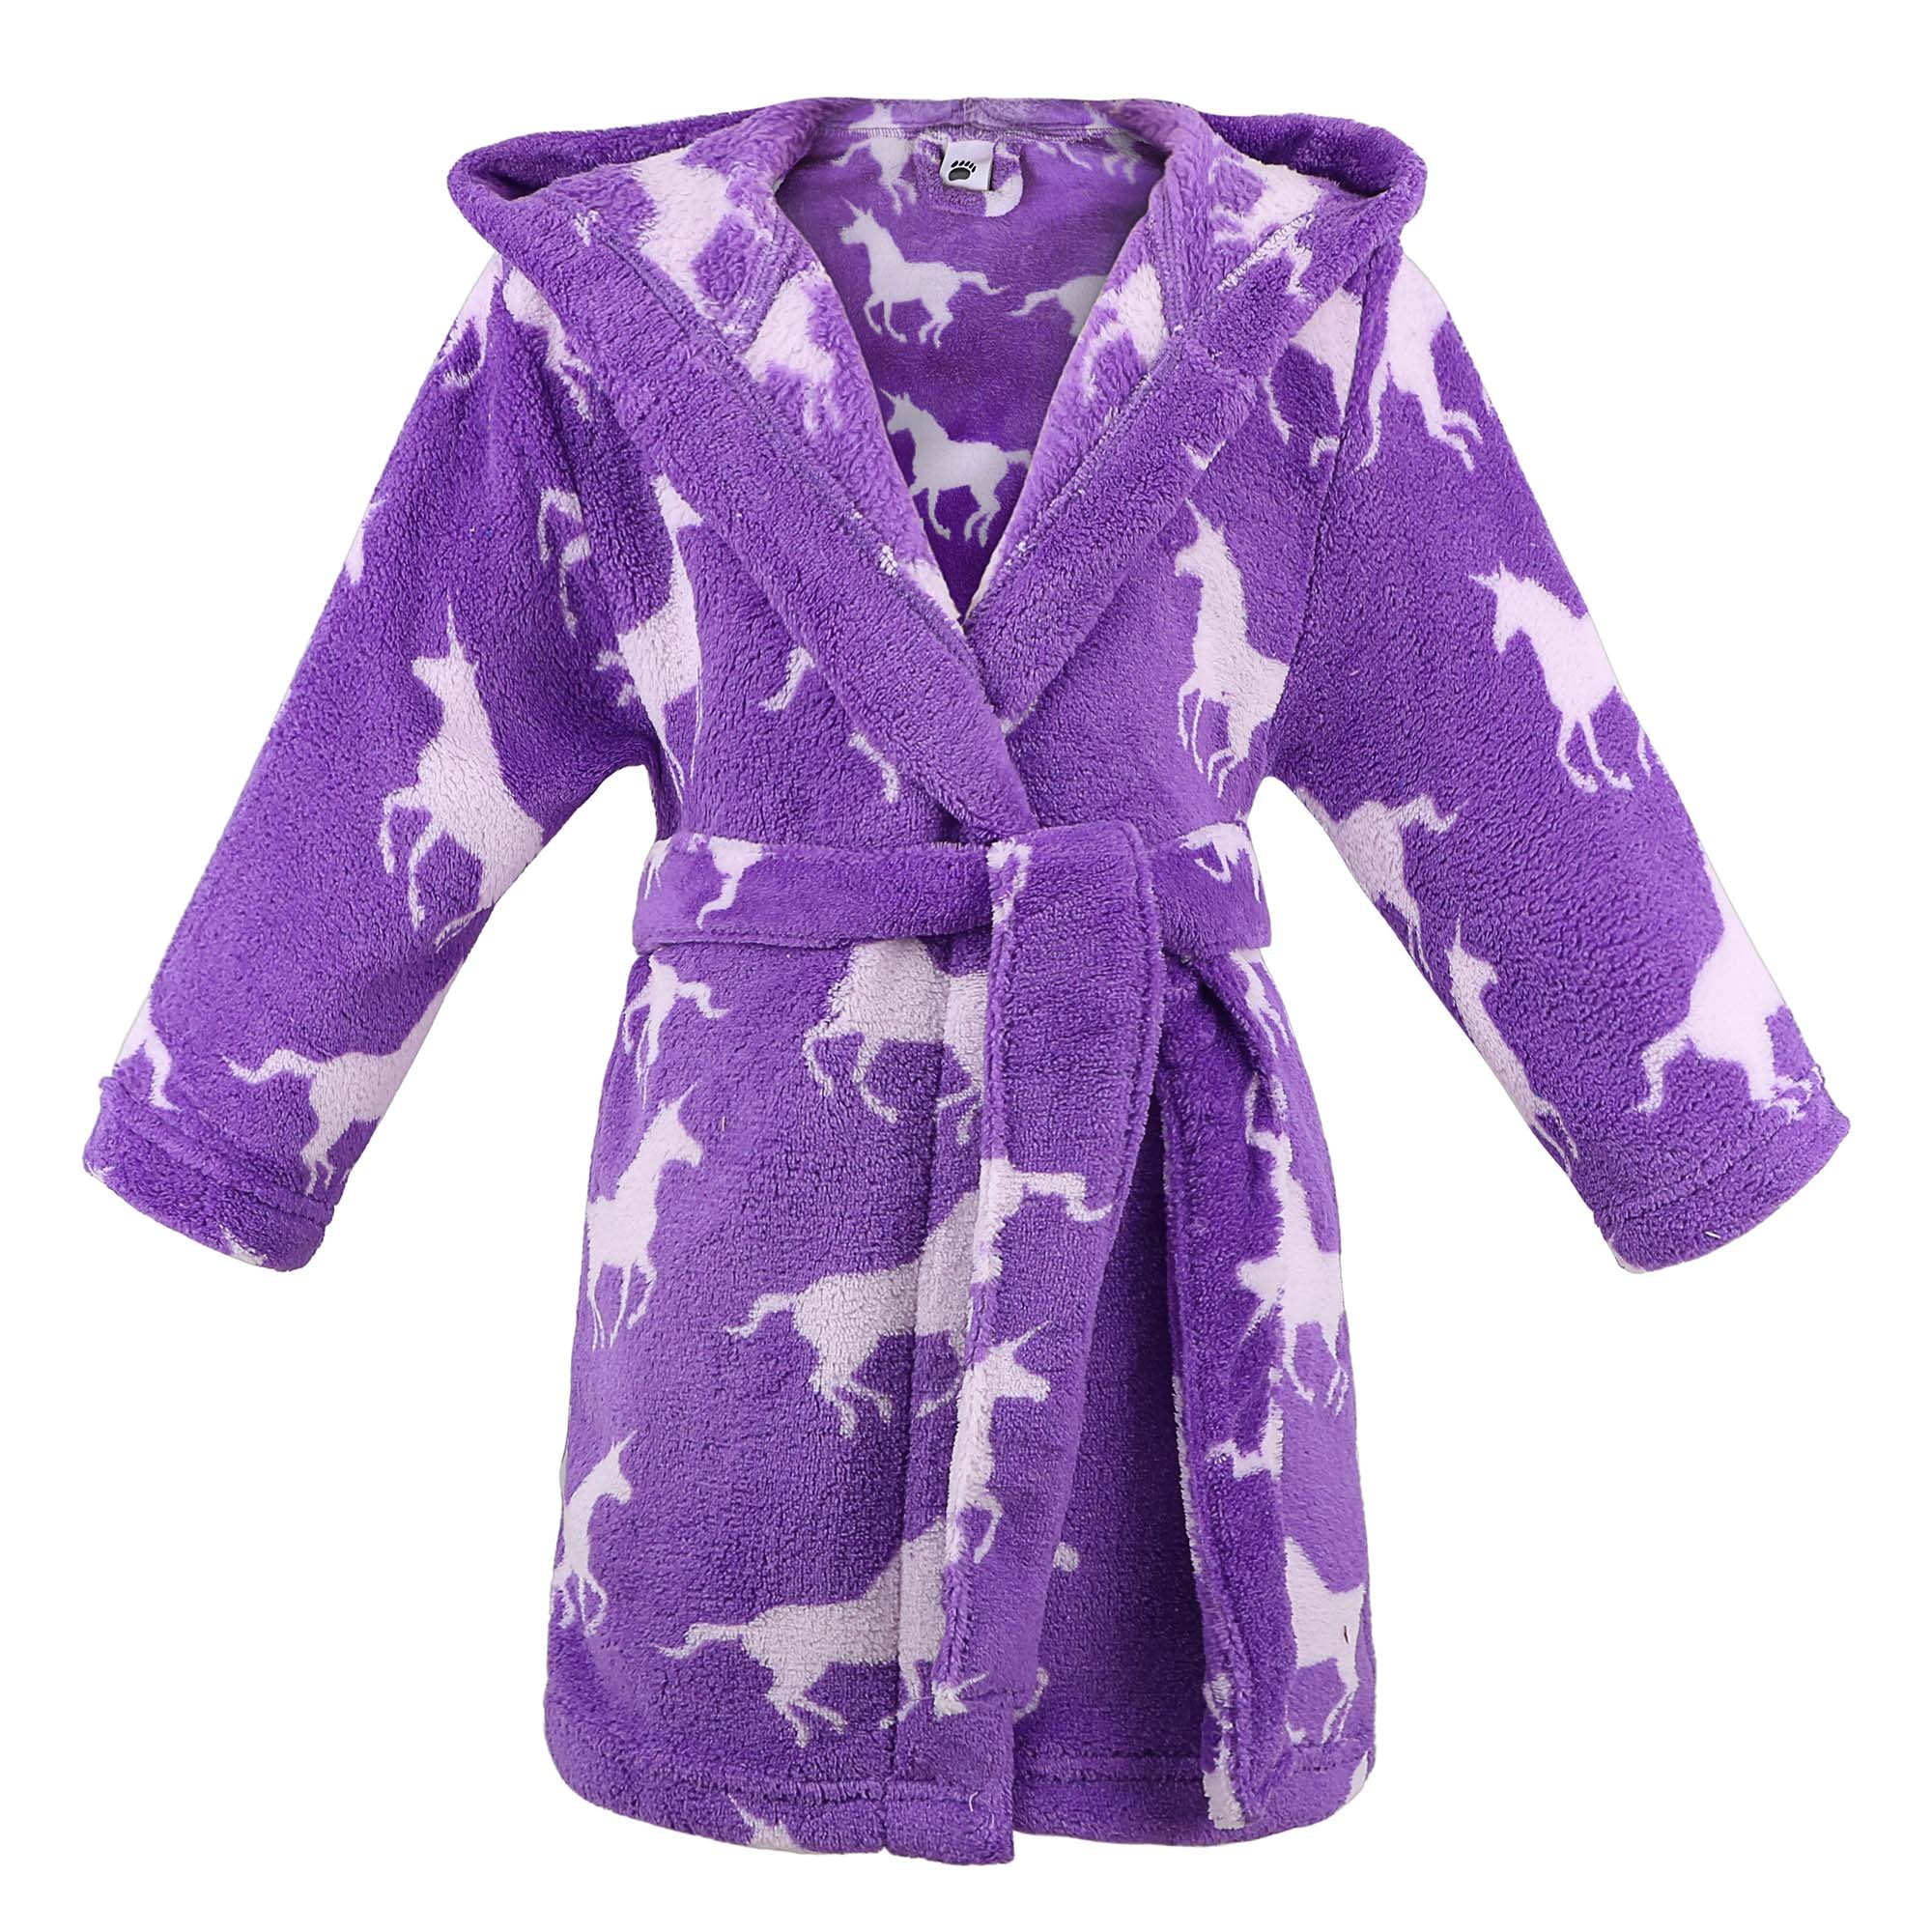 Children Hooded Flannel Fleece Bathrobe Girls Robe w/Side Pockets,Unicorns,XL